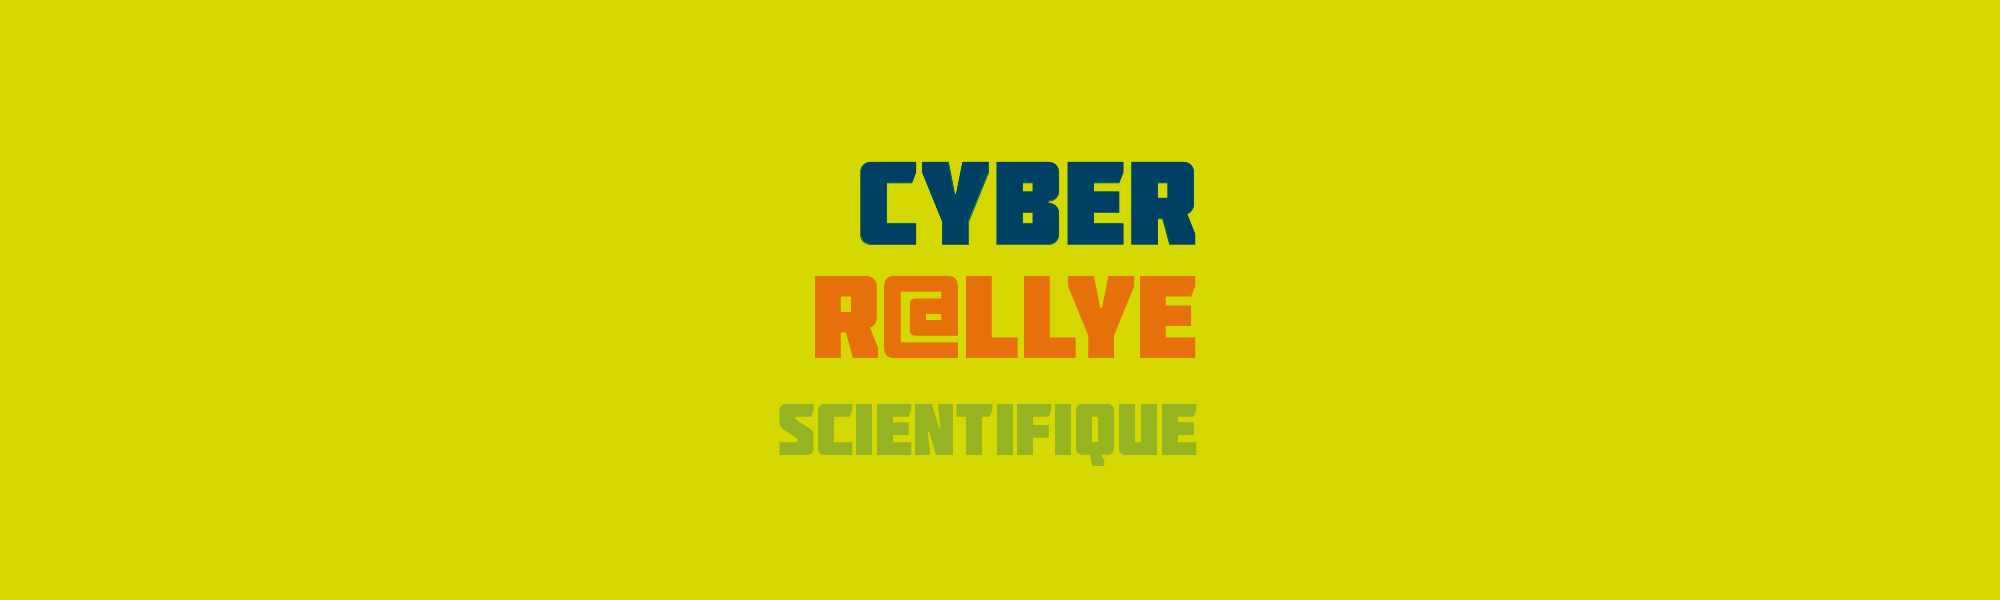 Banniere - Communication visuelle - Cyber Rallye 2018